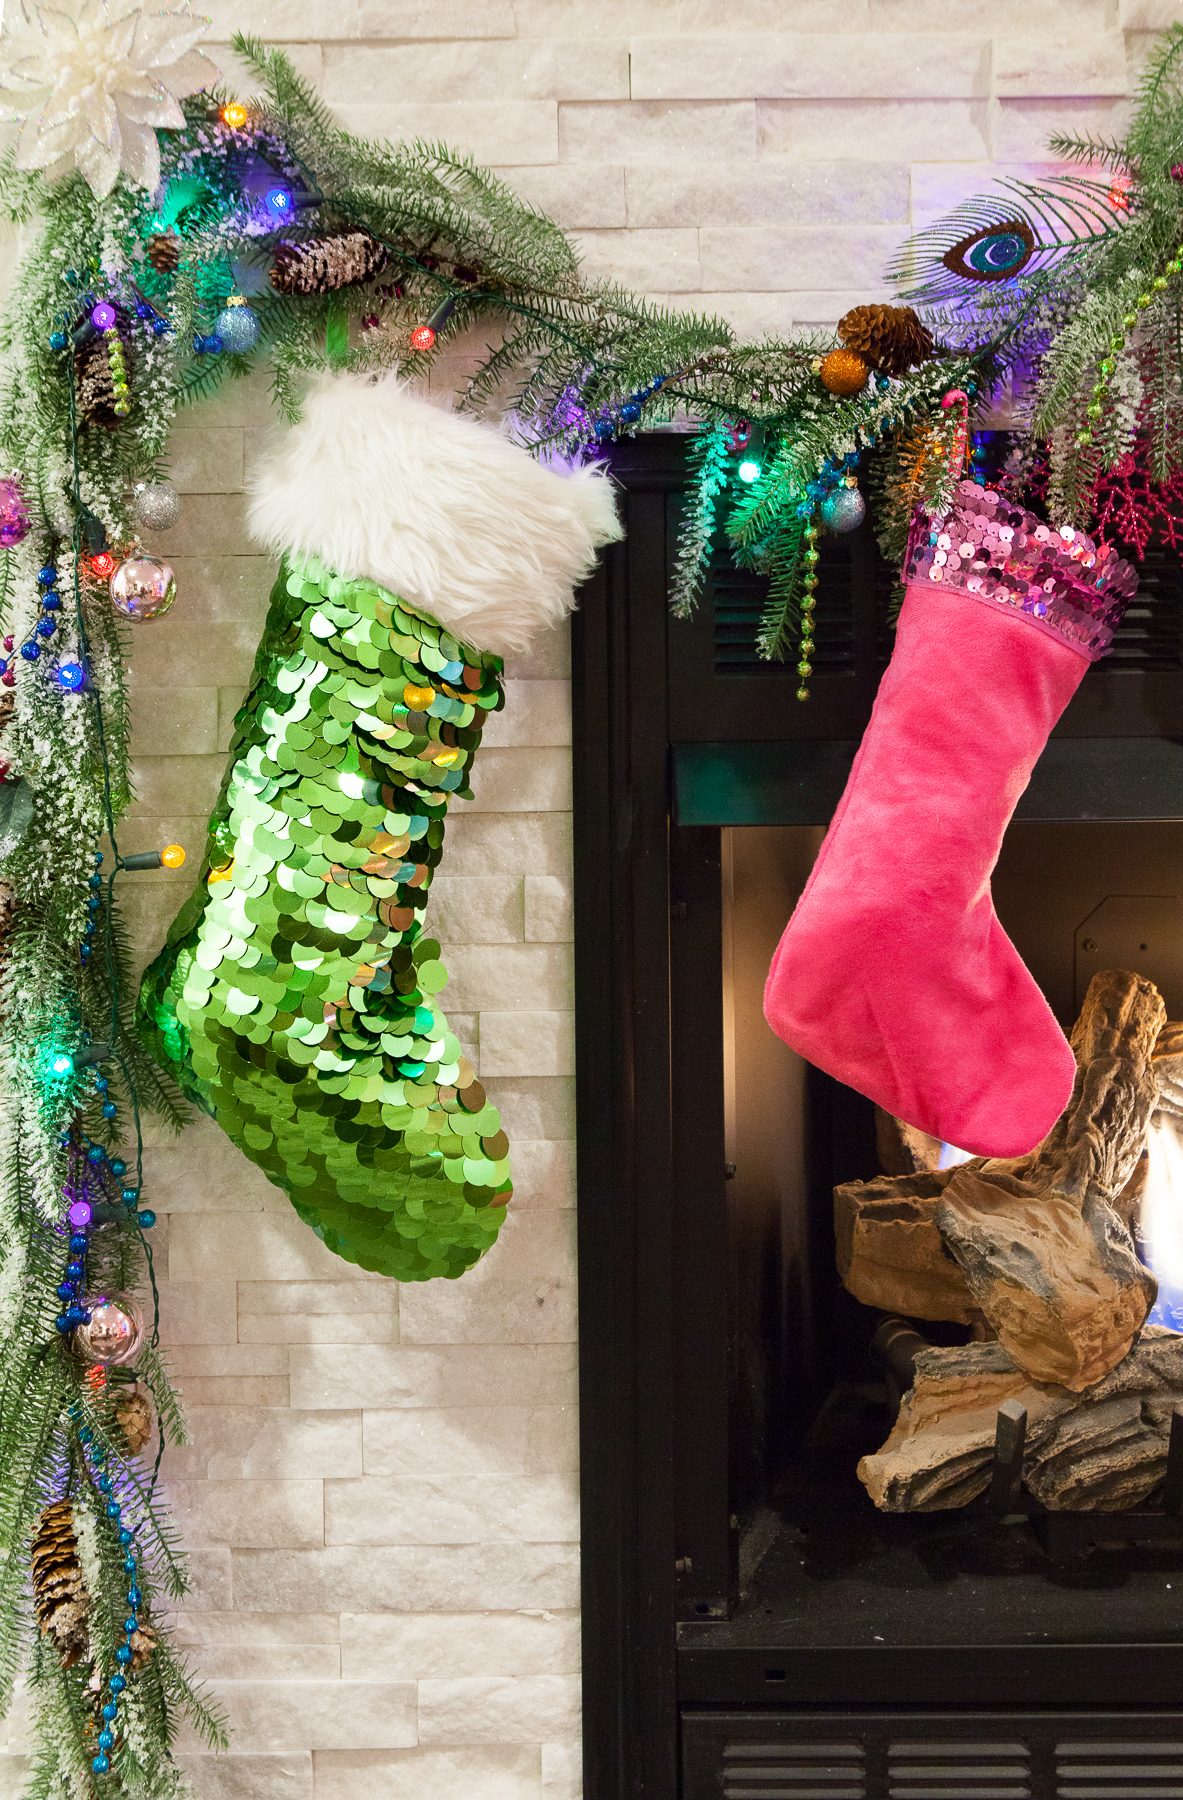 The stockings were hung by the chimney with care, in hopes that St. Nicholas soon would be there